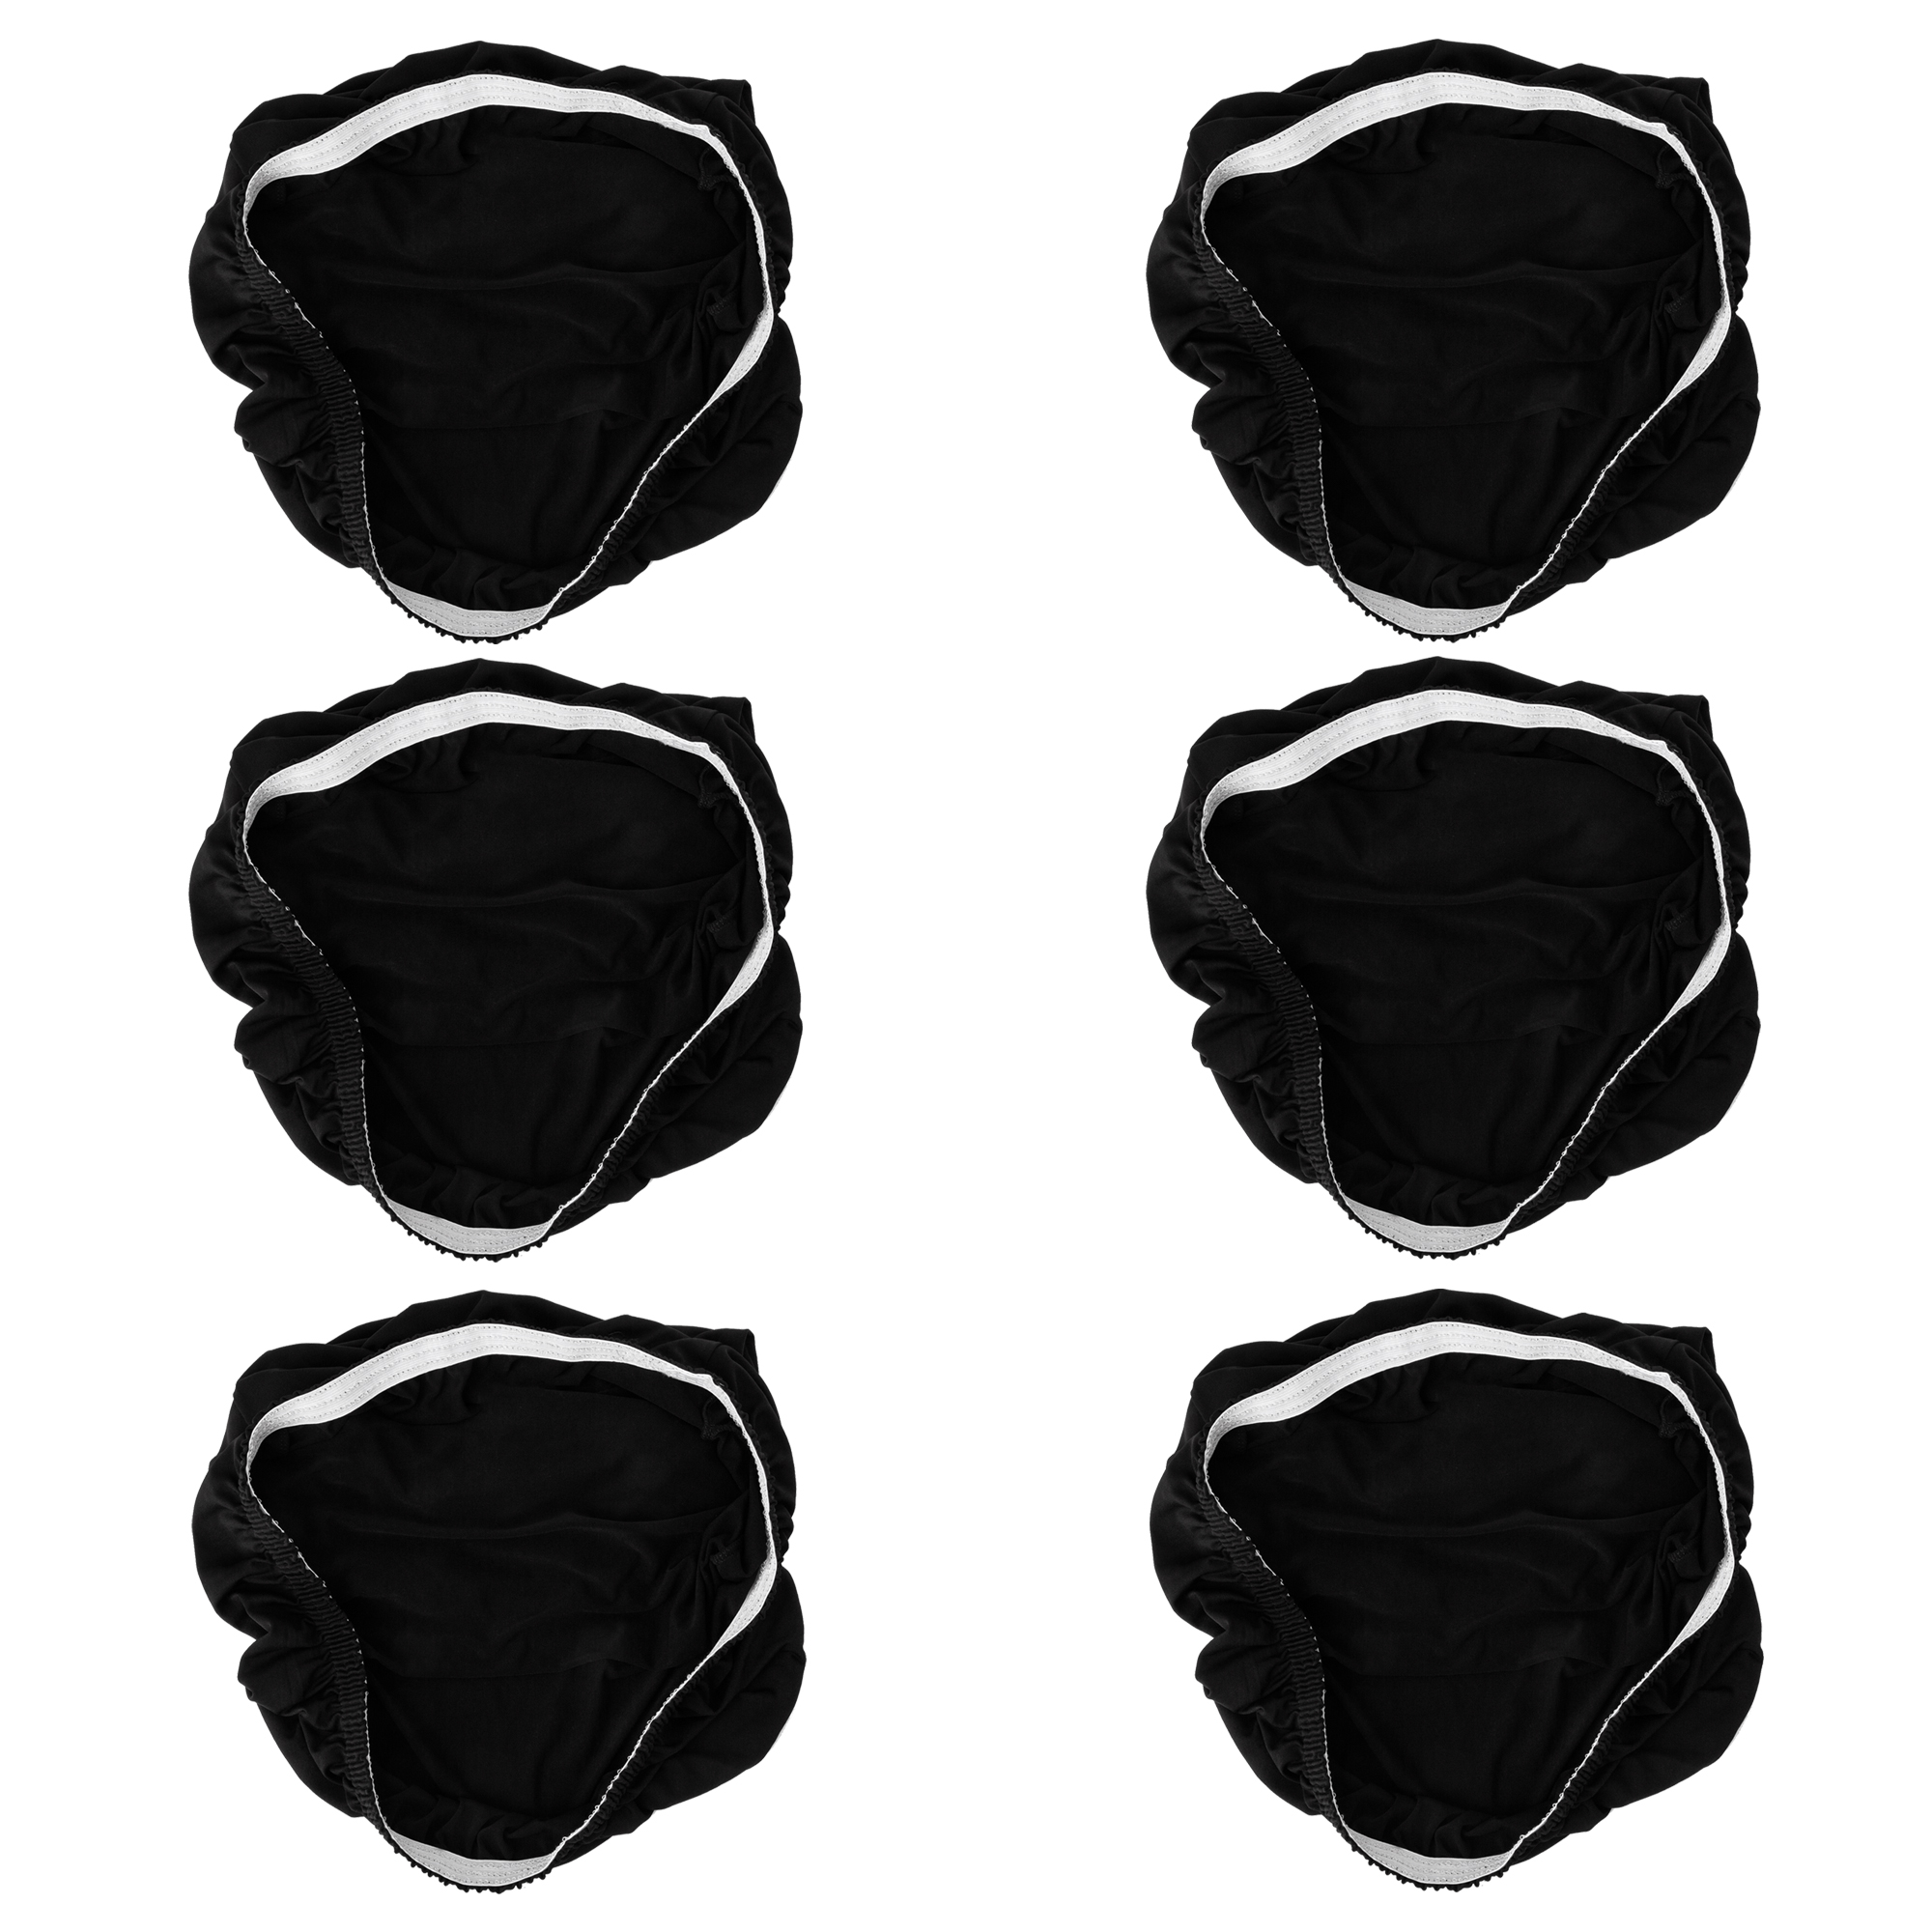 TKOOFN 6Pcs Spandex Stretch Chair Cover Washable Dining Chair Protector Slipcover